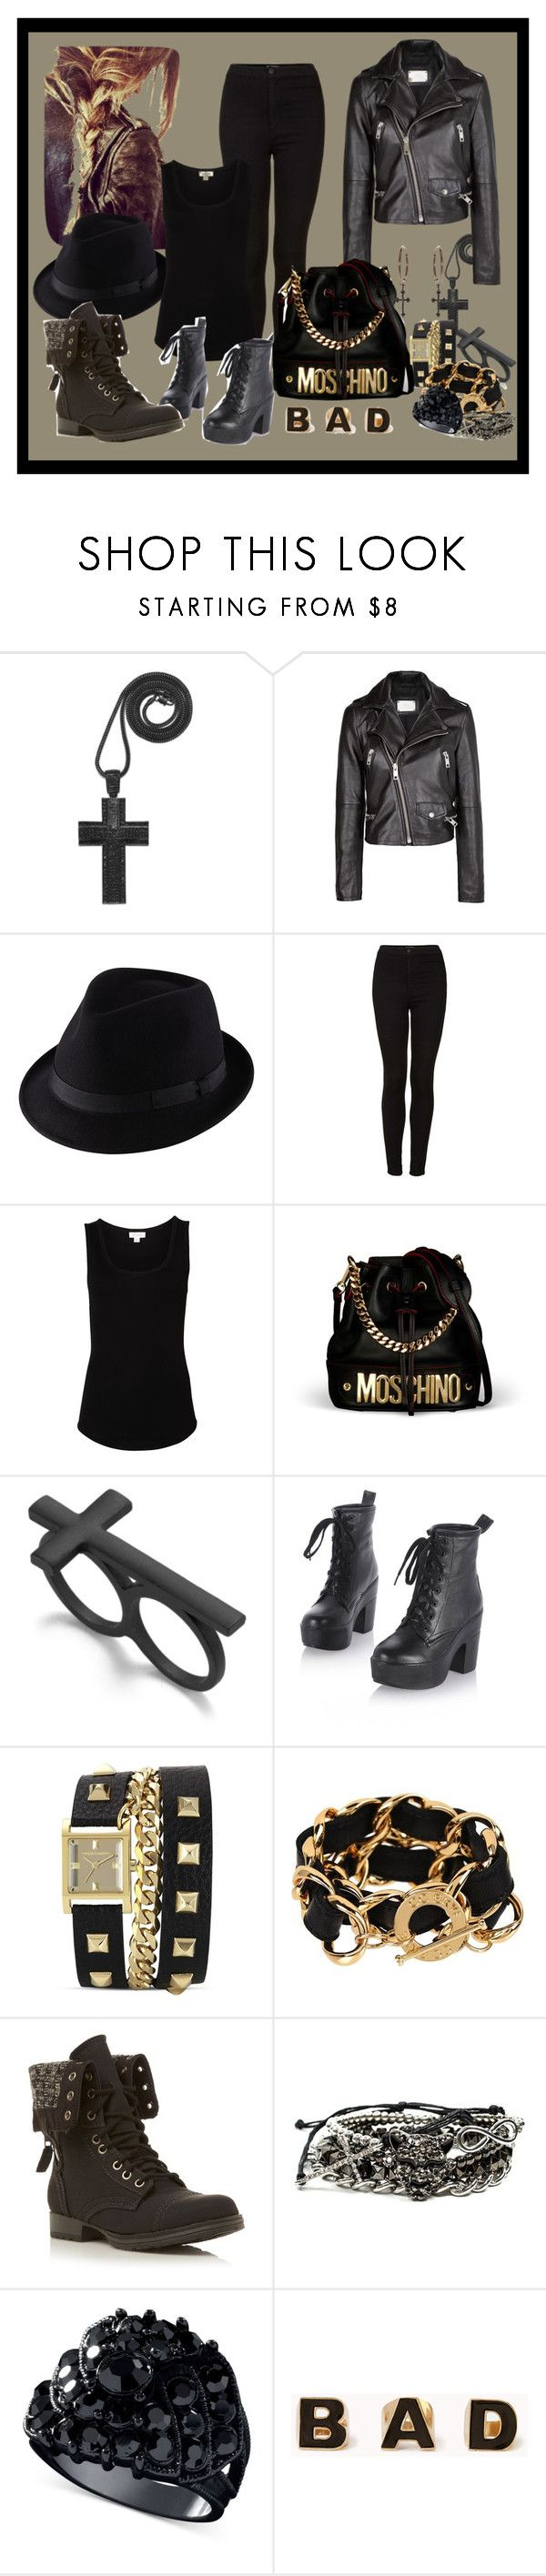 """""""Dark Desire"""" by msmariesales ❤ liked on Polyvore featuring MANGO, Uniqlo, Topshop, Witchery, Material Girl, Vince Camuto, CC SKYE, Head Over Heels by Dune, GUESS and Forever 21"""